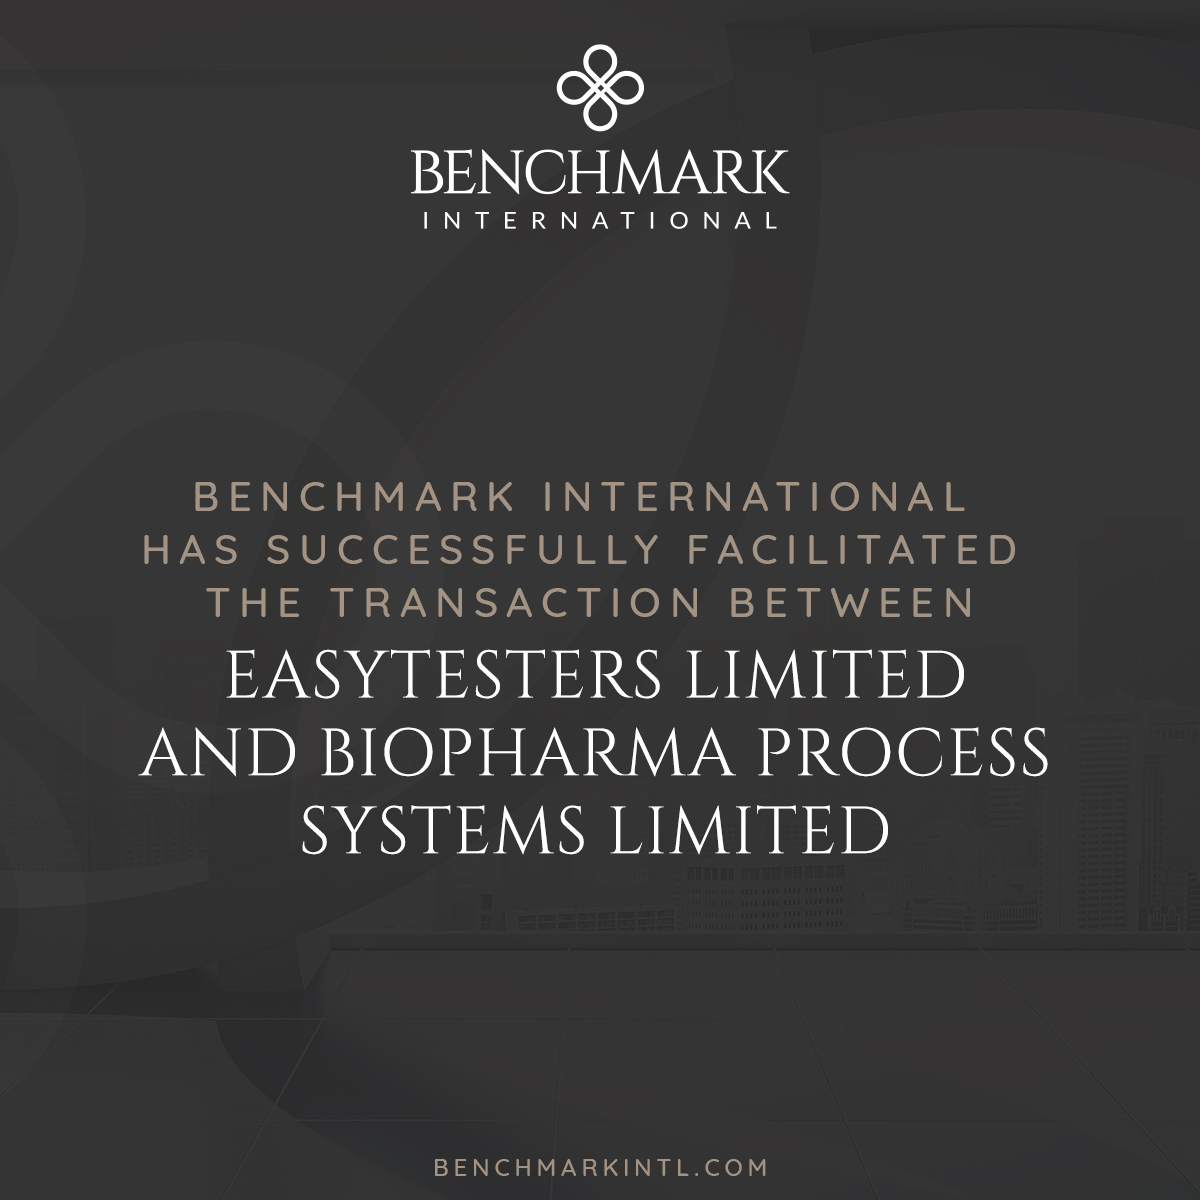 Easytesters Acquired by Biopharma Process Systems